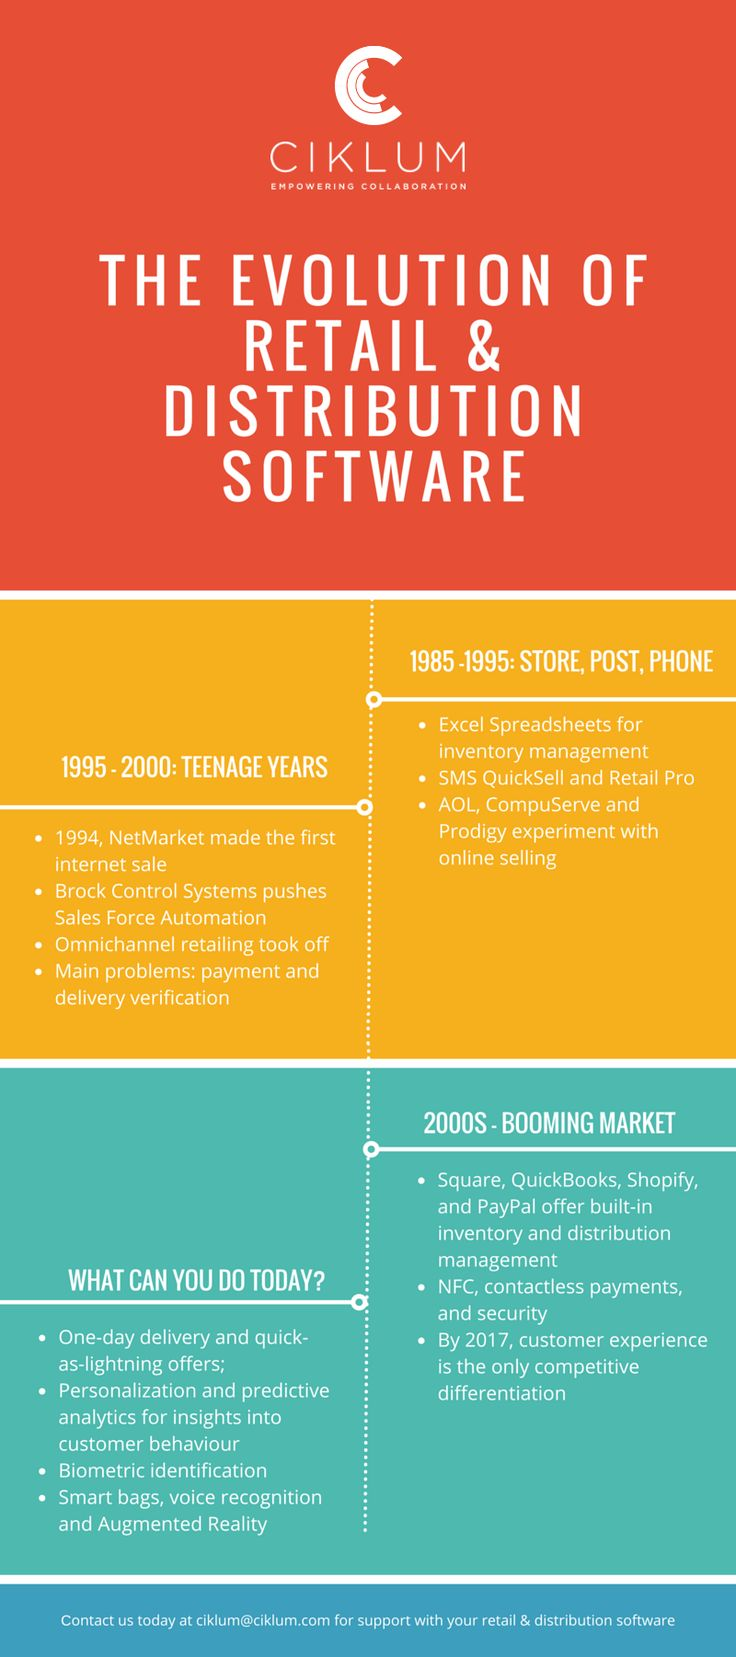 [Infographics] Evolution of Retail Software - from 1980s to 2010s